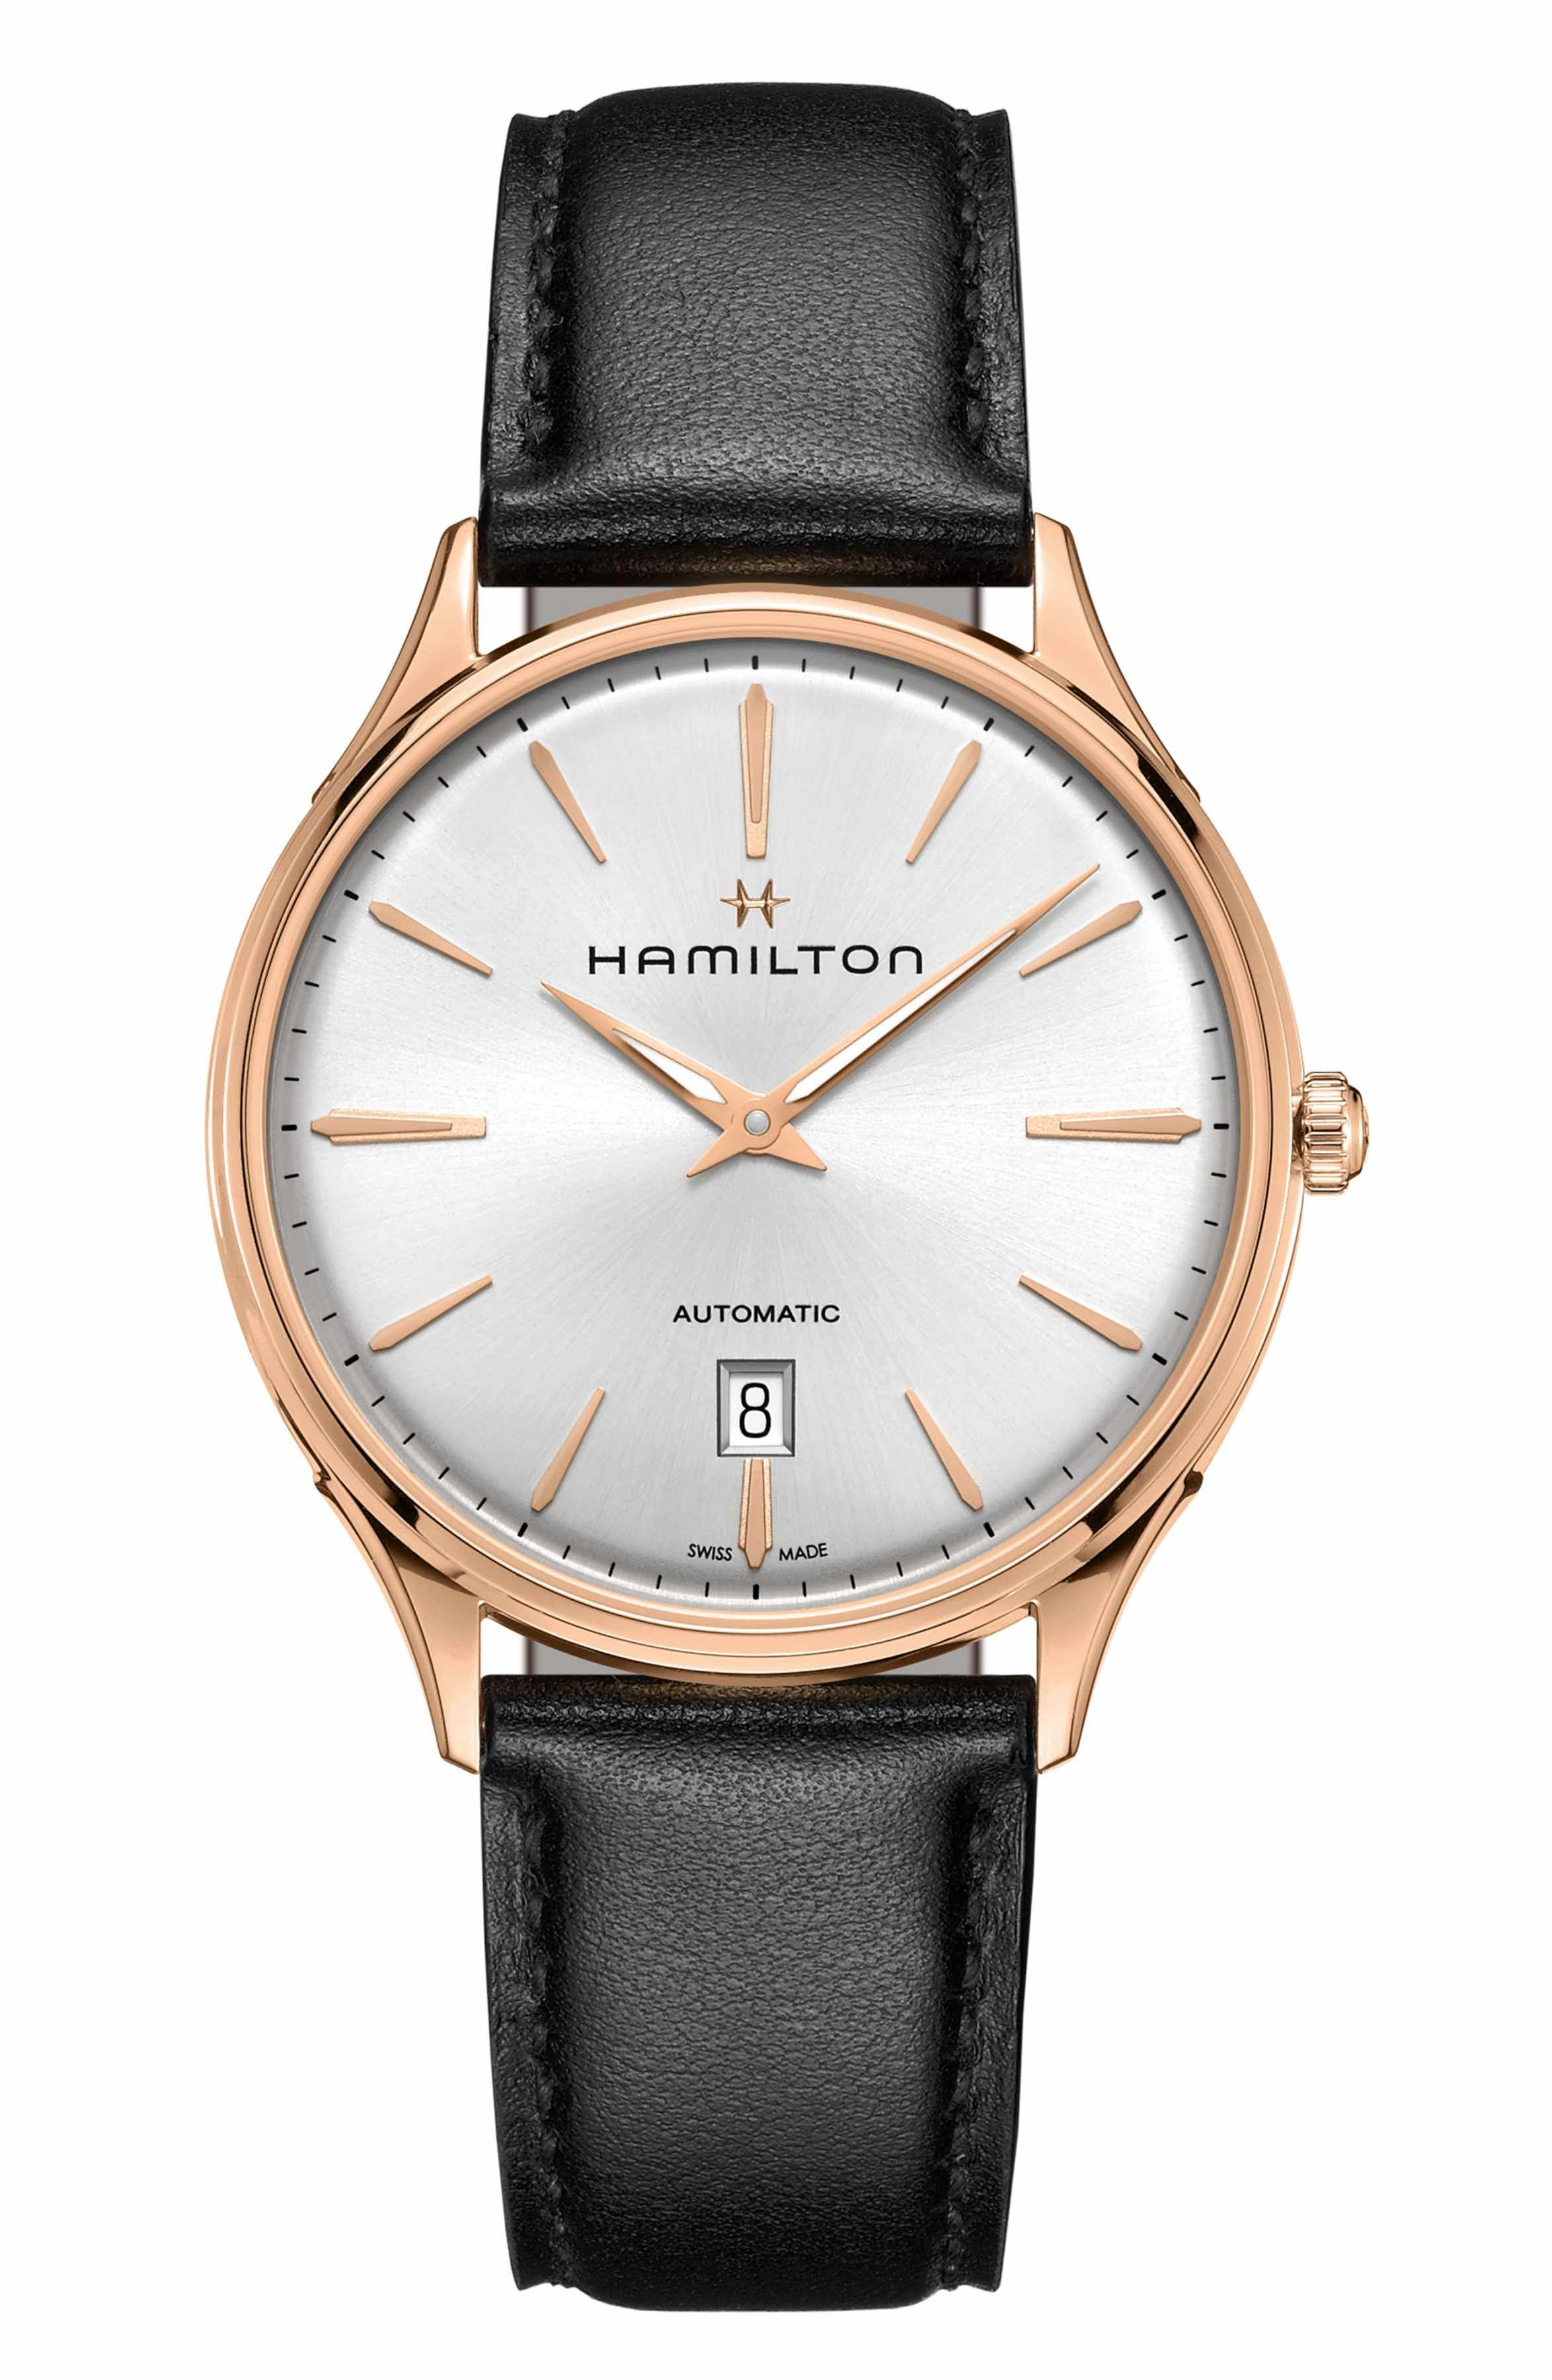 Relojes Para Hombre · Main Image - Hamilton Jazzmaster Thinline 18K Gold  Automatic Leather Strap Watch a21d59f2425f